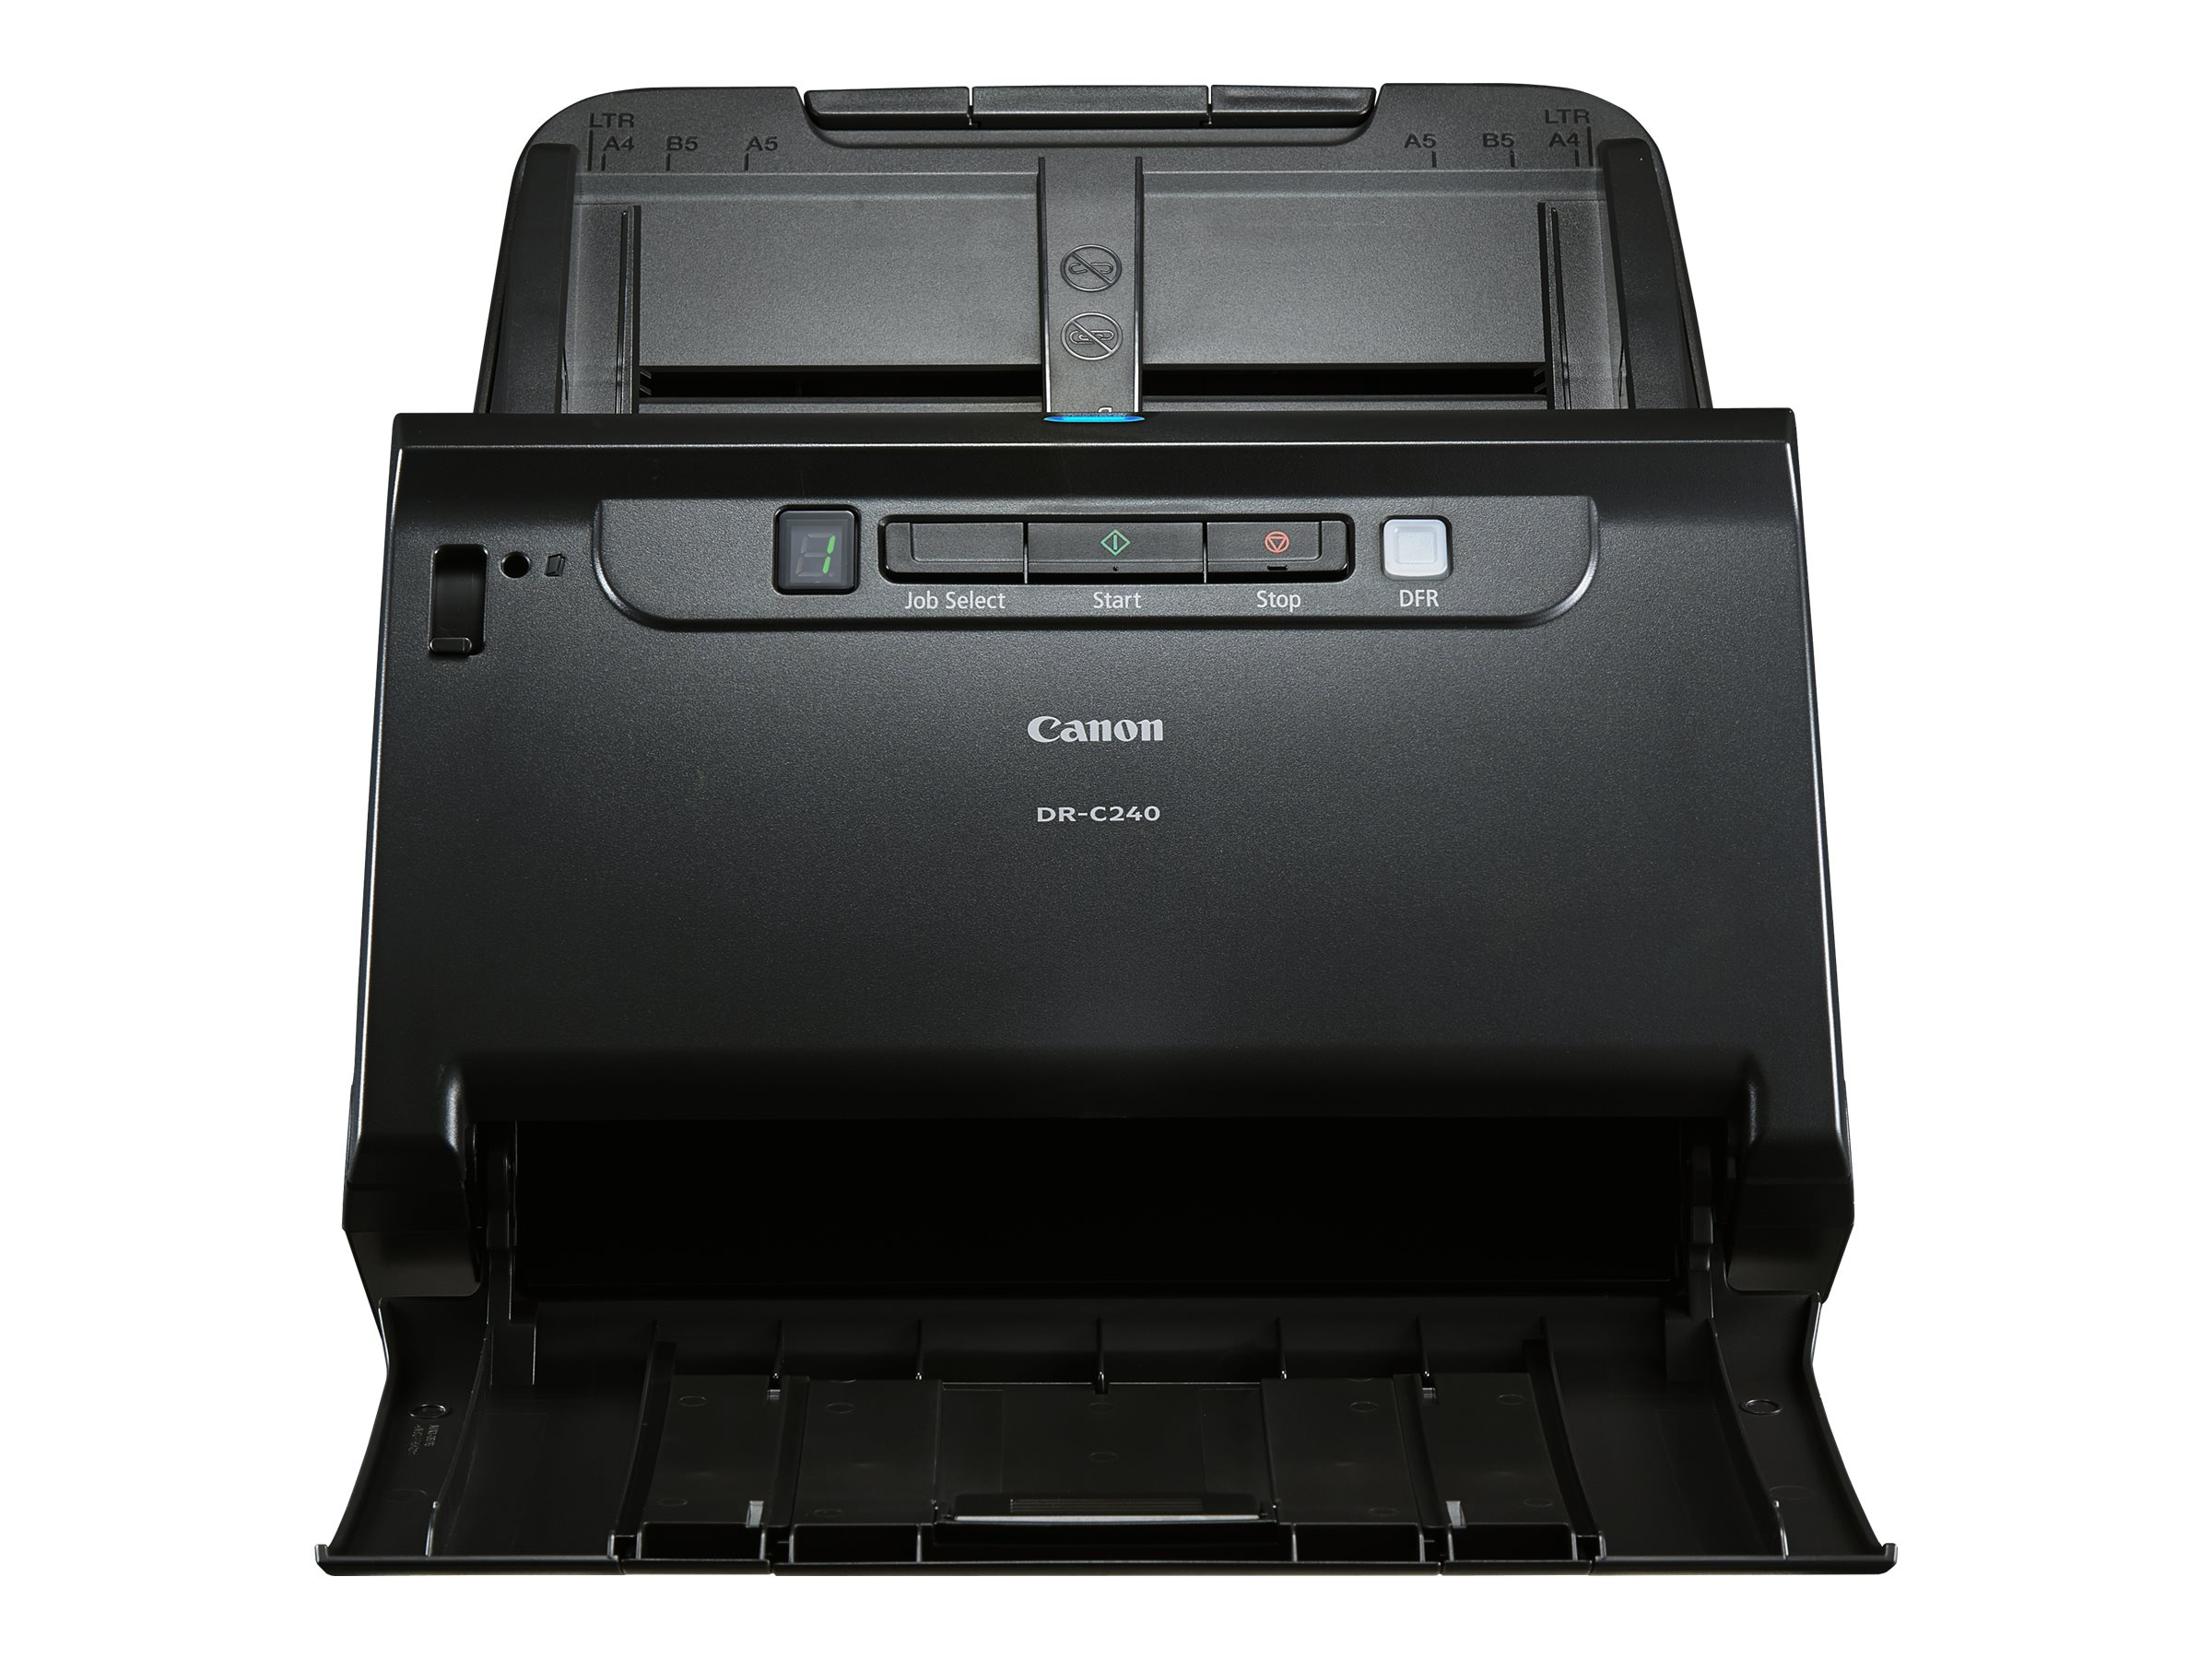 Open Box Canon imageFORMULA DR-C240 Document Management Scanner, 0651C002